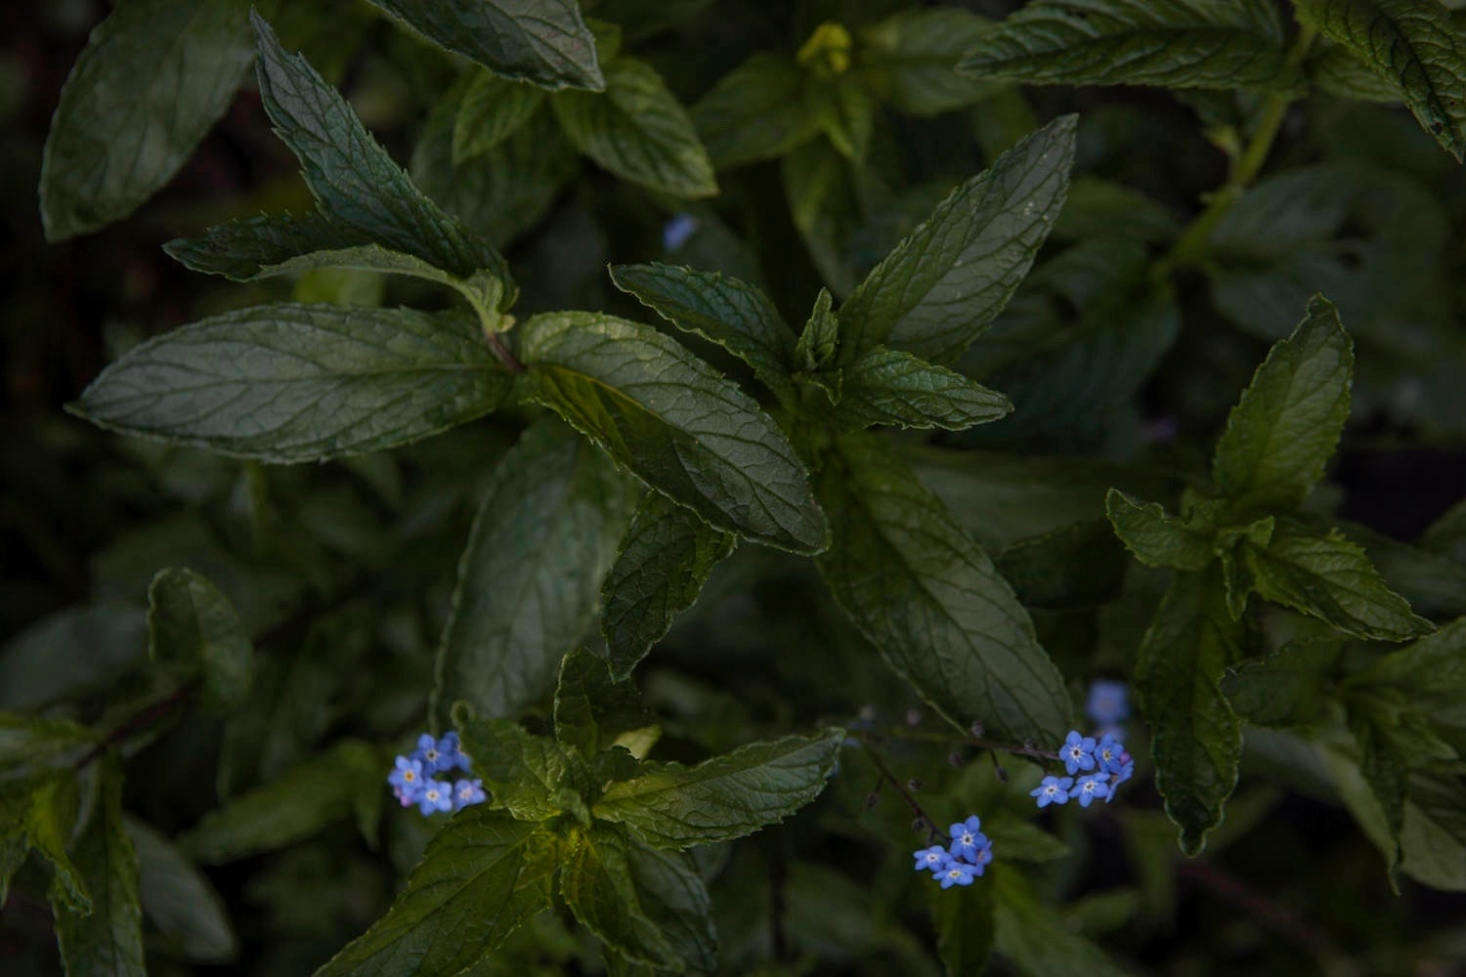 Mint, member of the Lamiaceae family. Grow your own with tips from Mint: A Field Guide to Planting, Care & Design.